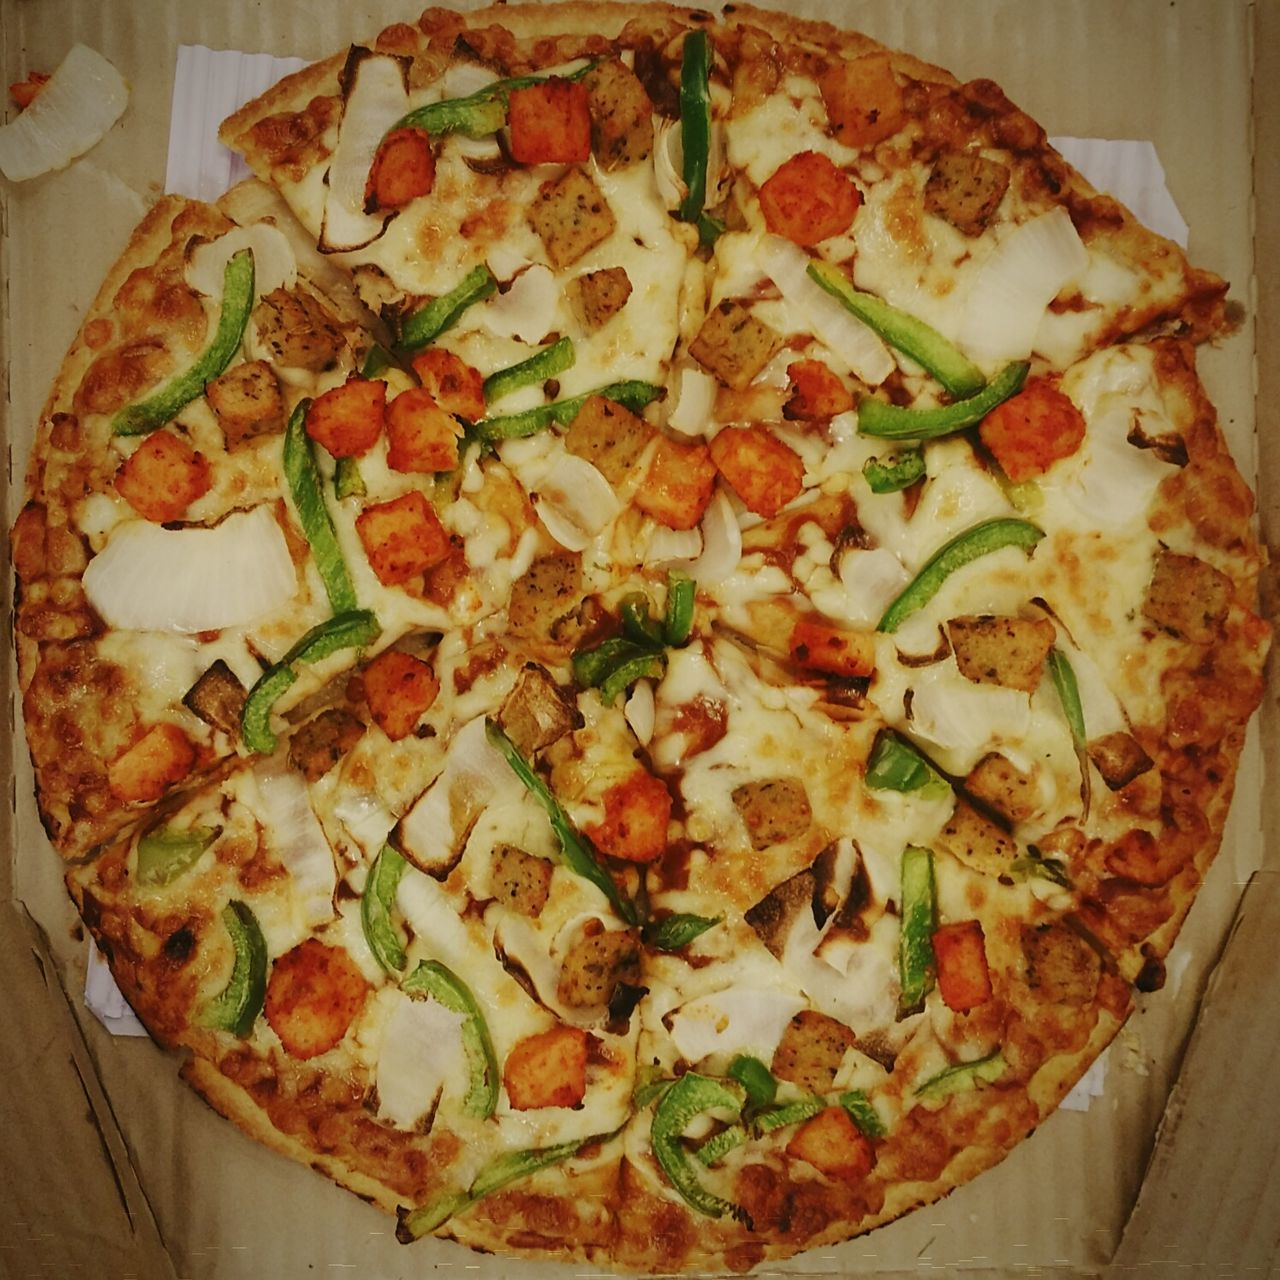 Domino's Chicken Fiesta Pizza. Domino's Pizza Dominos Pizza Dominos Chicken Pizza Chicken Fiesta Pizza Domino's Chicken Fiesta Pizza Food Food Photography Food Porn Mouthwatering Foodgasm Foodlover Chicken Dish Cheese Topping Capsicum Pizza Pizza Lover Pizza Time Delicious Tasty Top View Foody